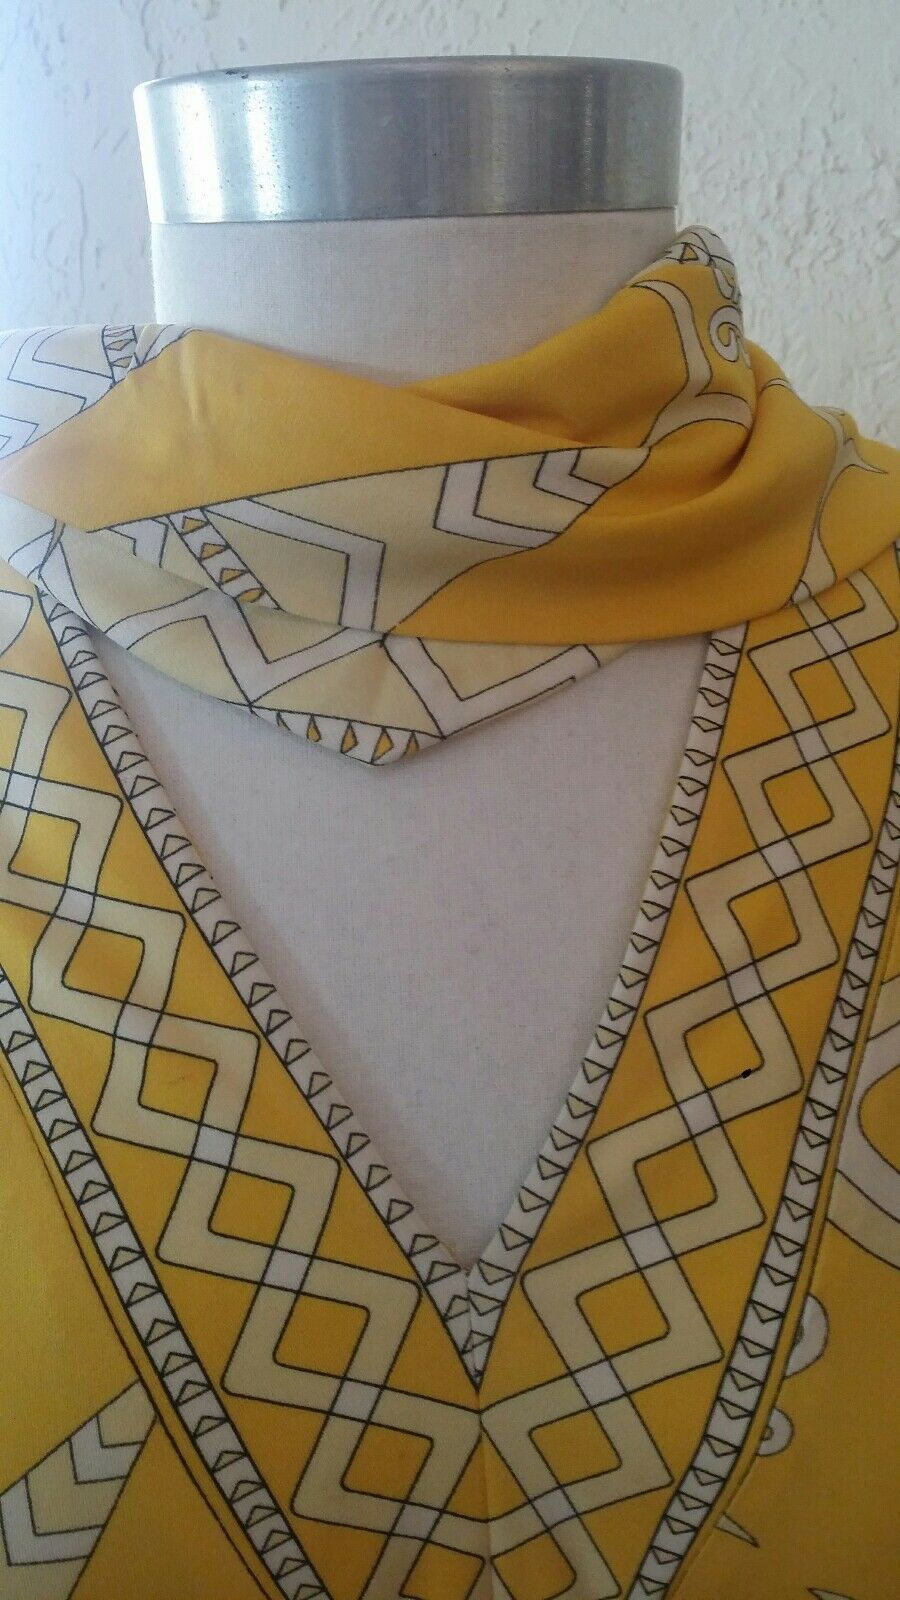 VINTAGE 60s EMILIO PUCCI SILK SCARF print 2 PIECE DRESS ENSEMBLE SAKS YELLOW